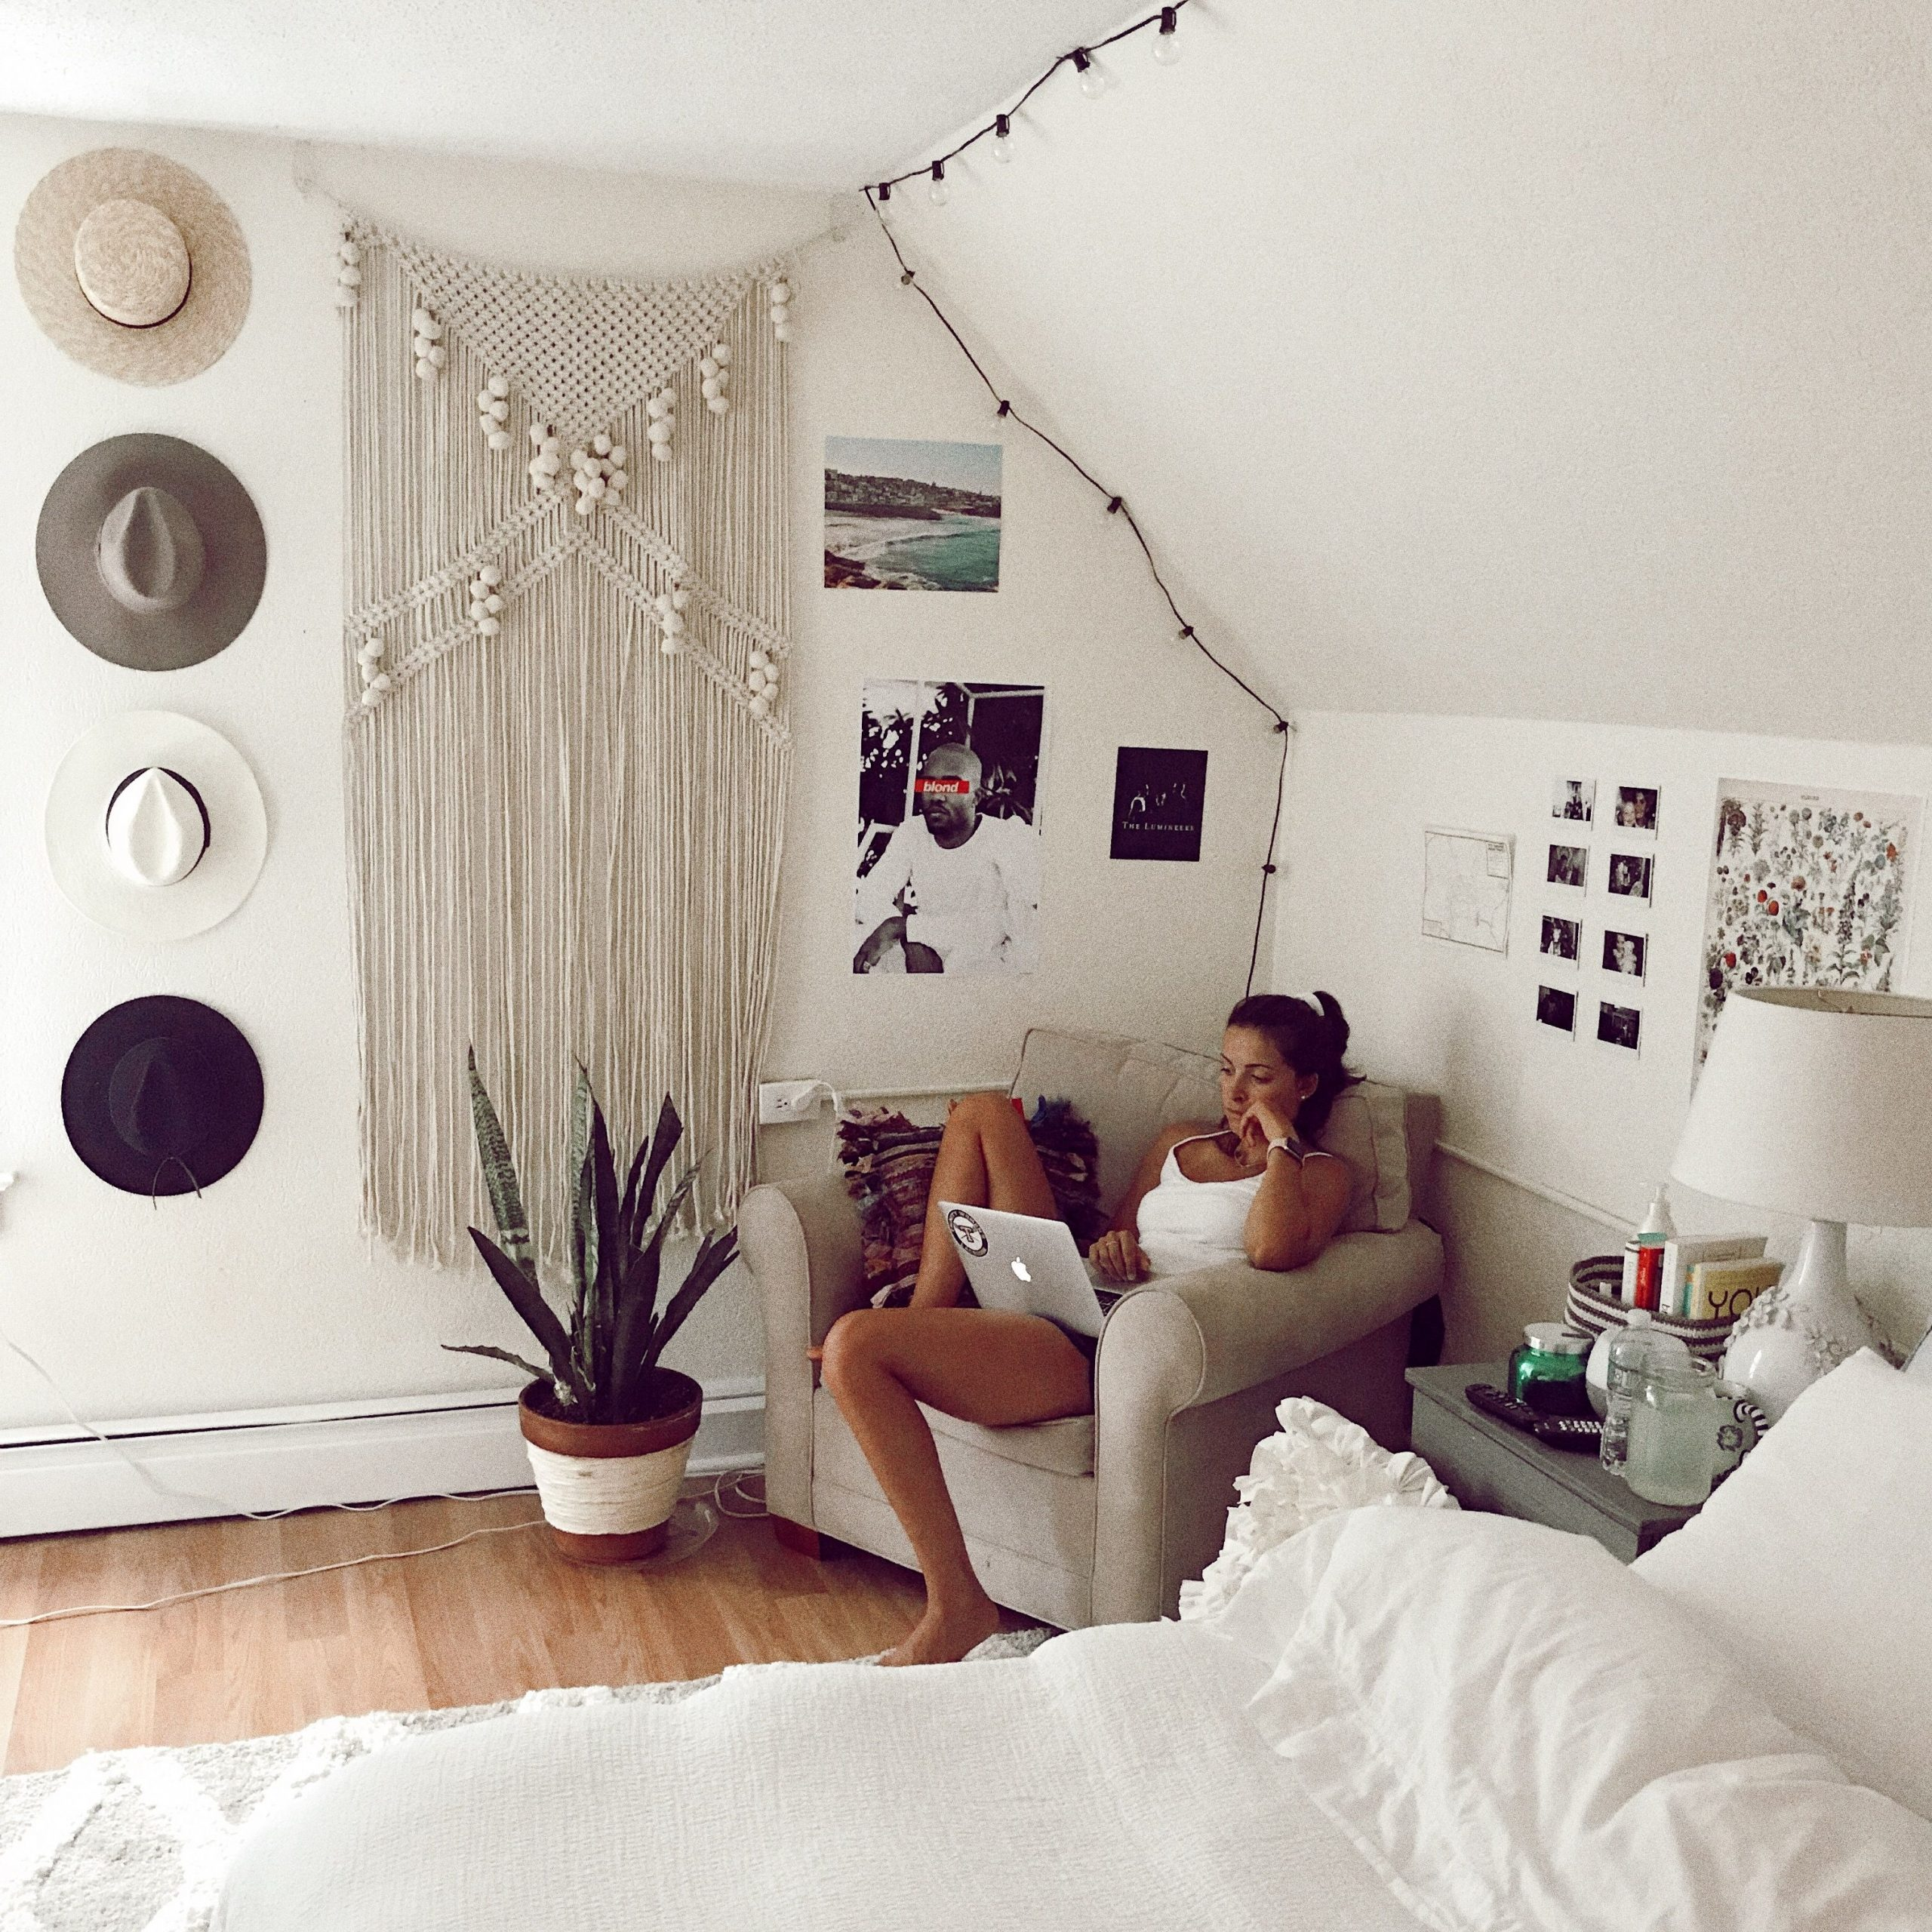 Magnificent Minimalist Bohemian Dorm Room Bedding On Gorgeous Pin by Ella Hasselroth On Minimalist Room On Minimalist Bohemian Dorm Room Bedding